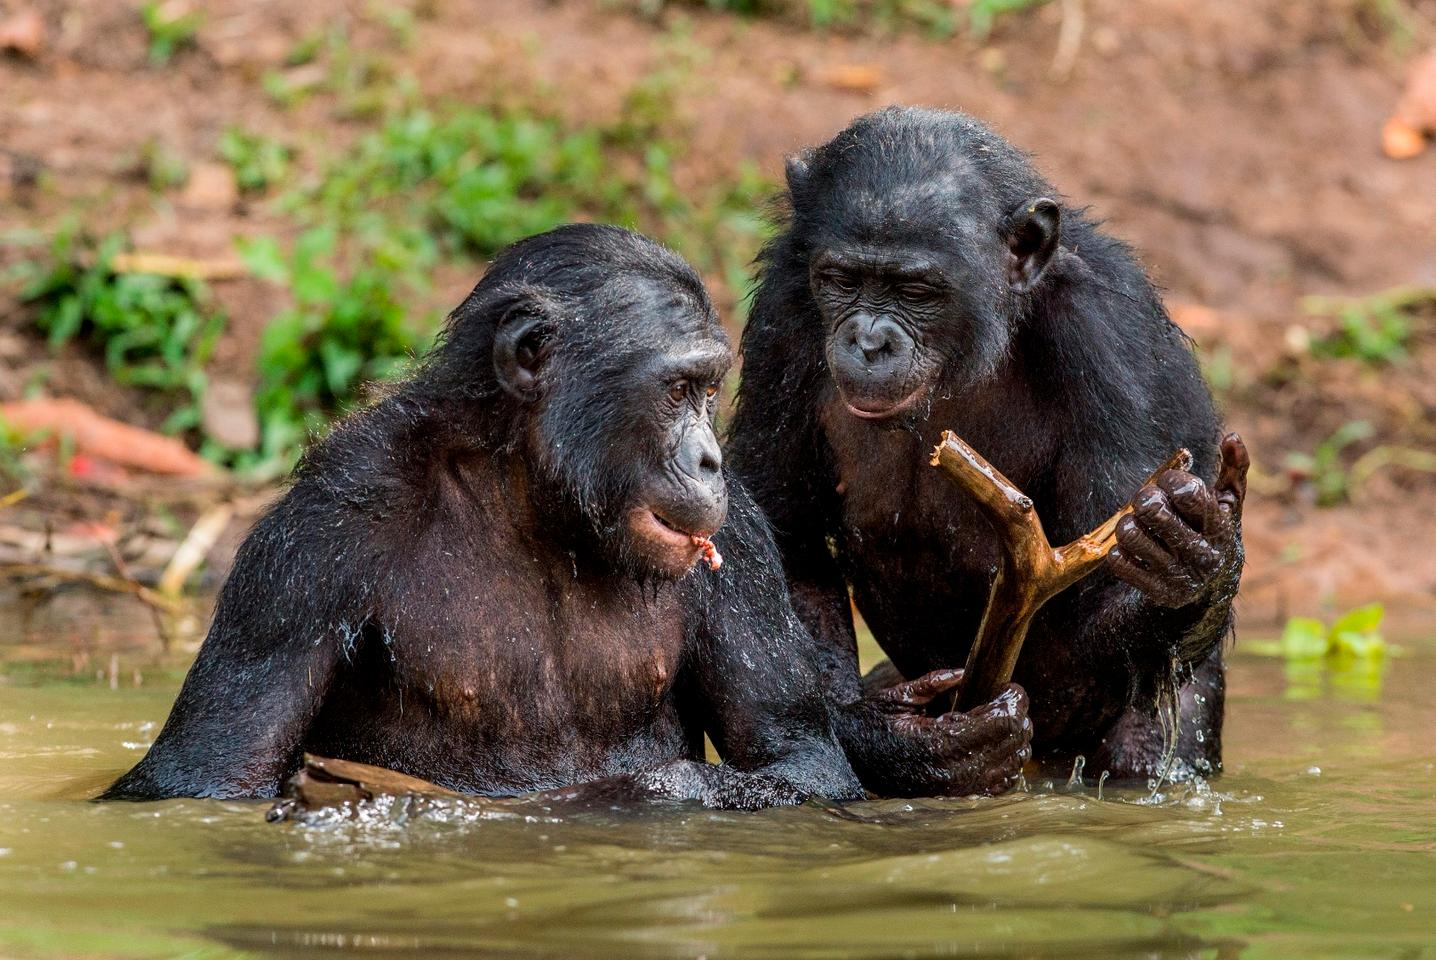 Bonobos will help out other bonobos that they don't even know, without being asked